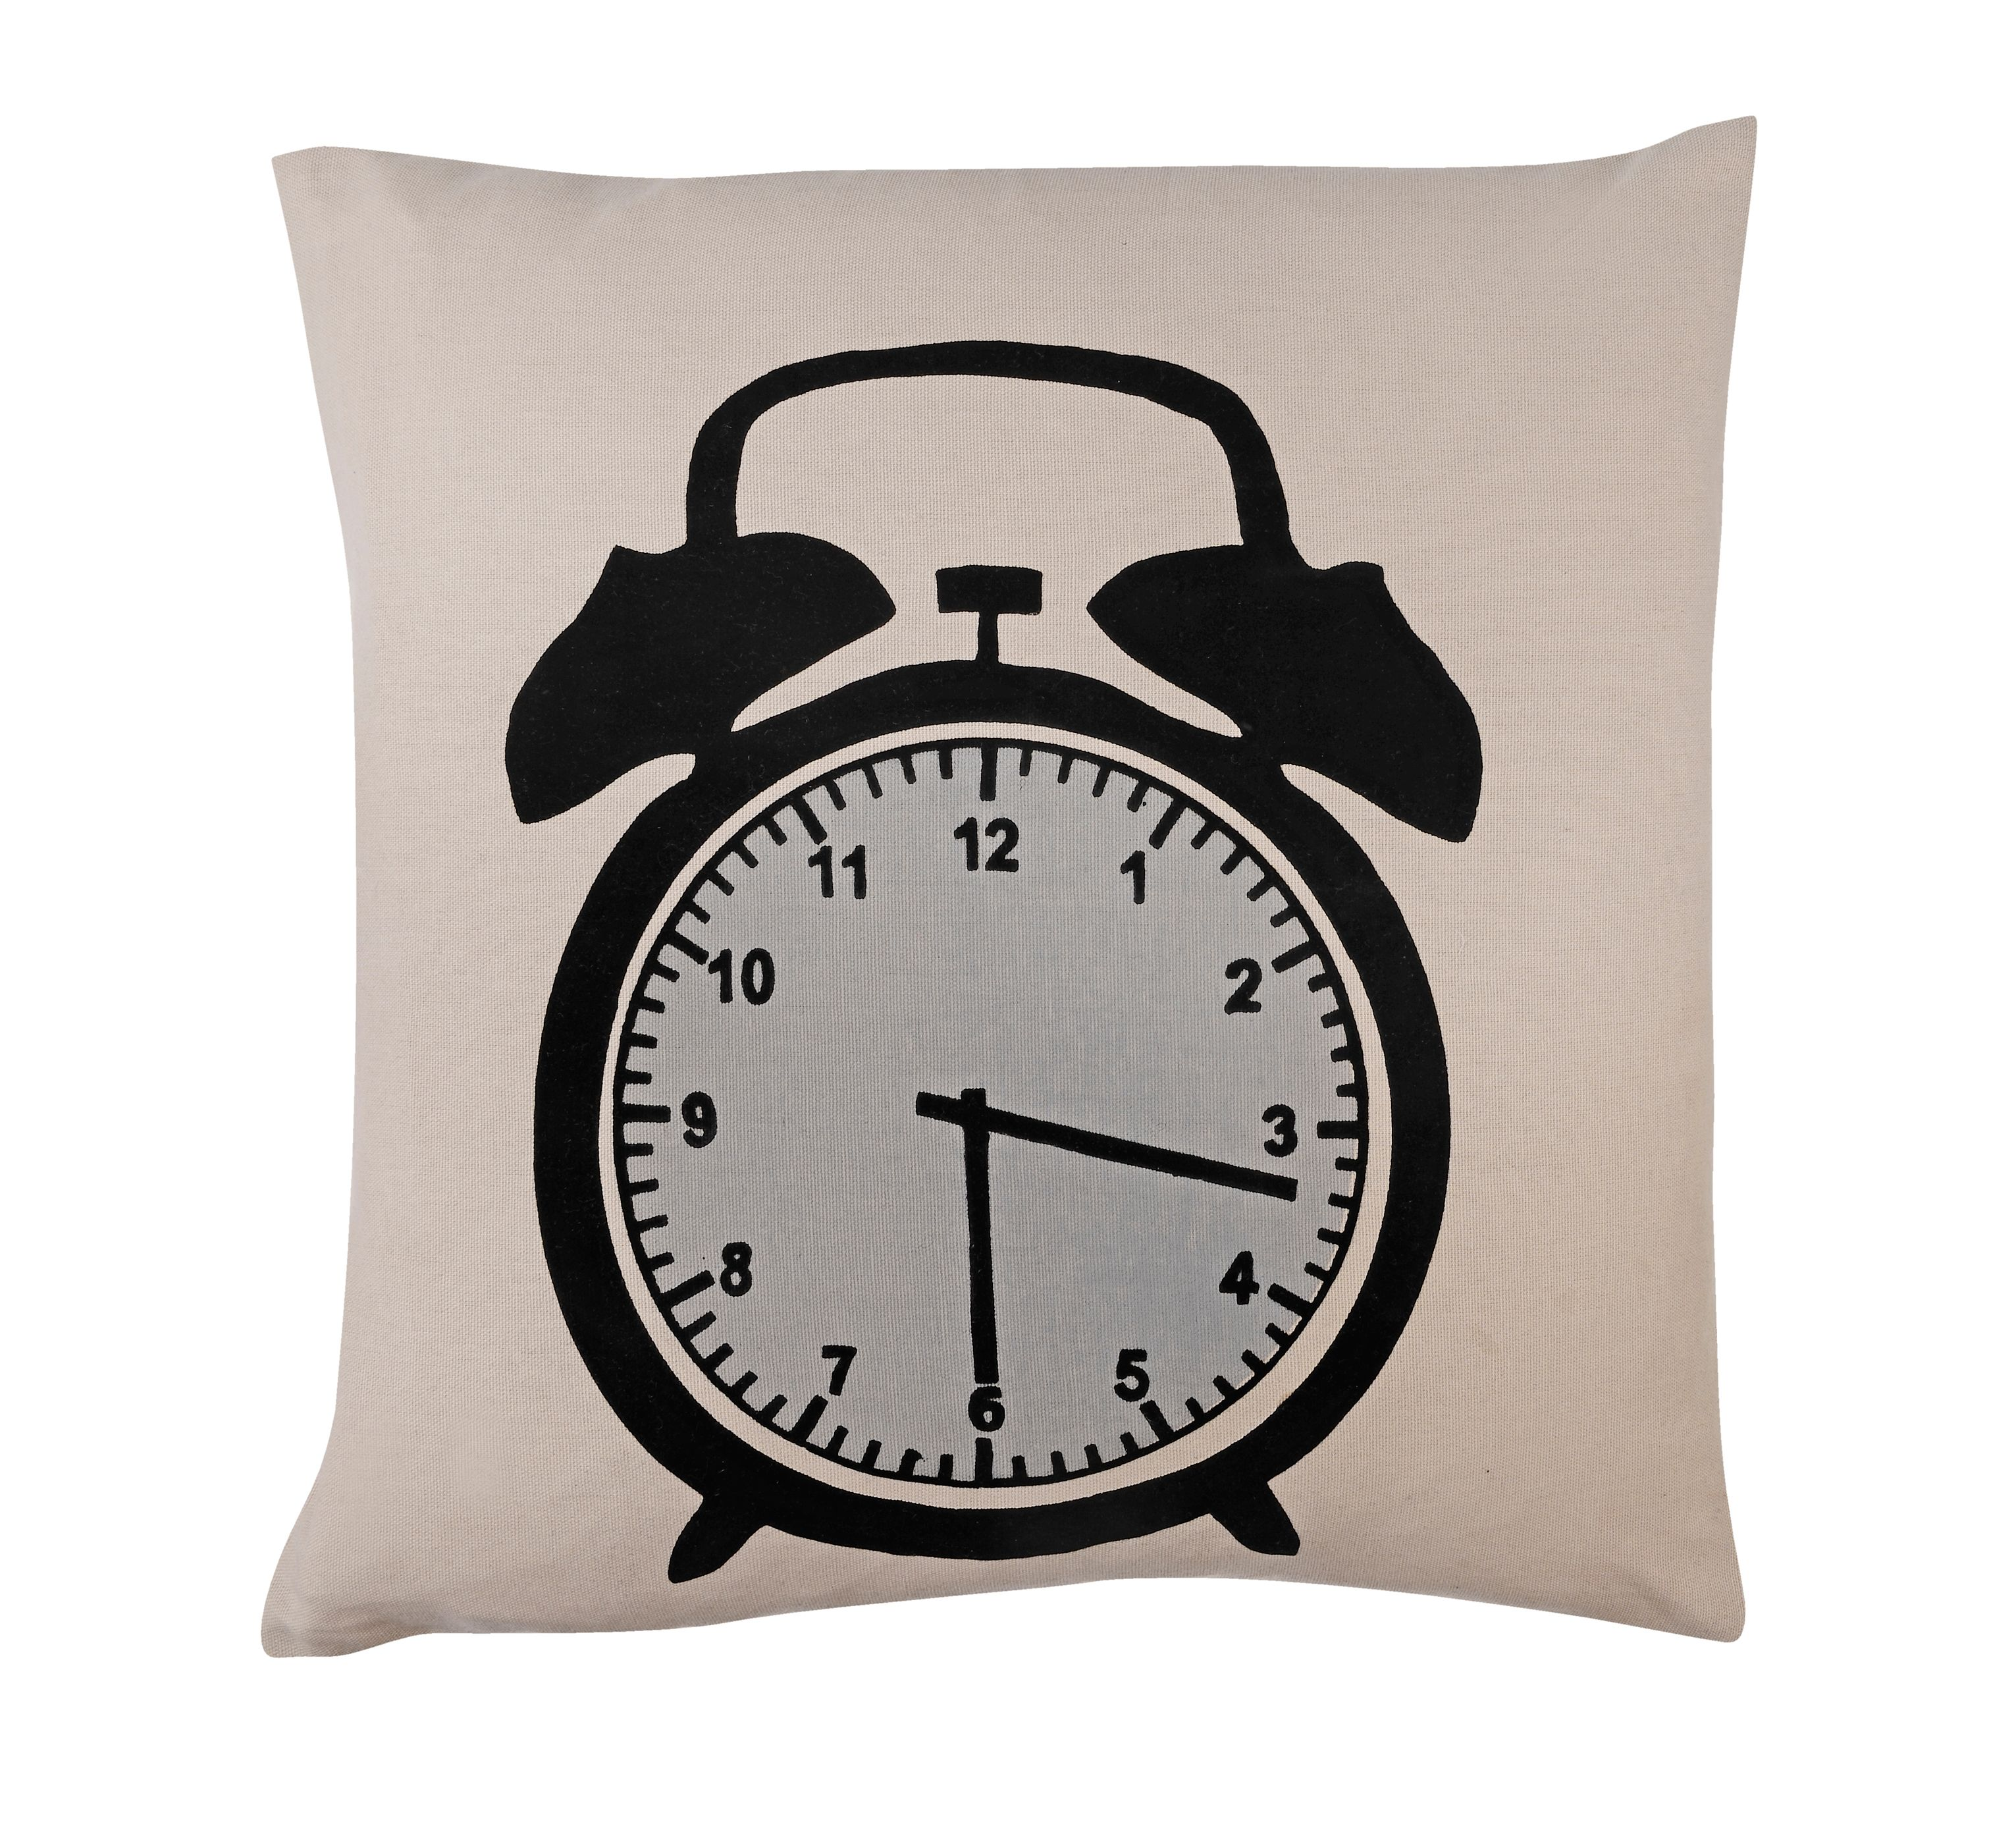 Monochrome clock design flocked cushion